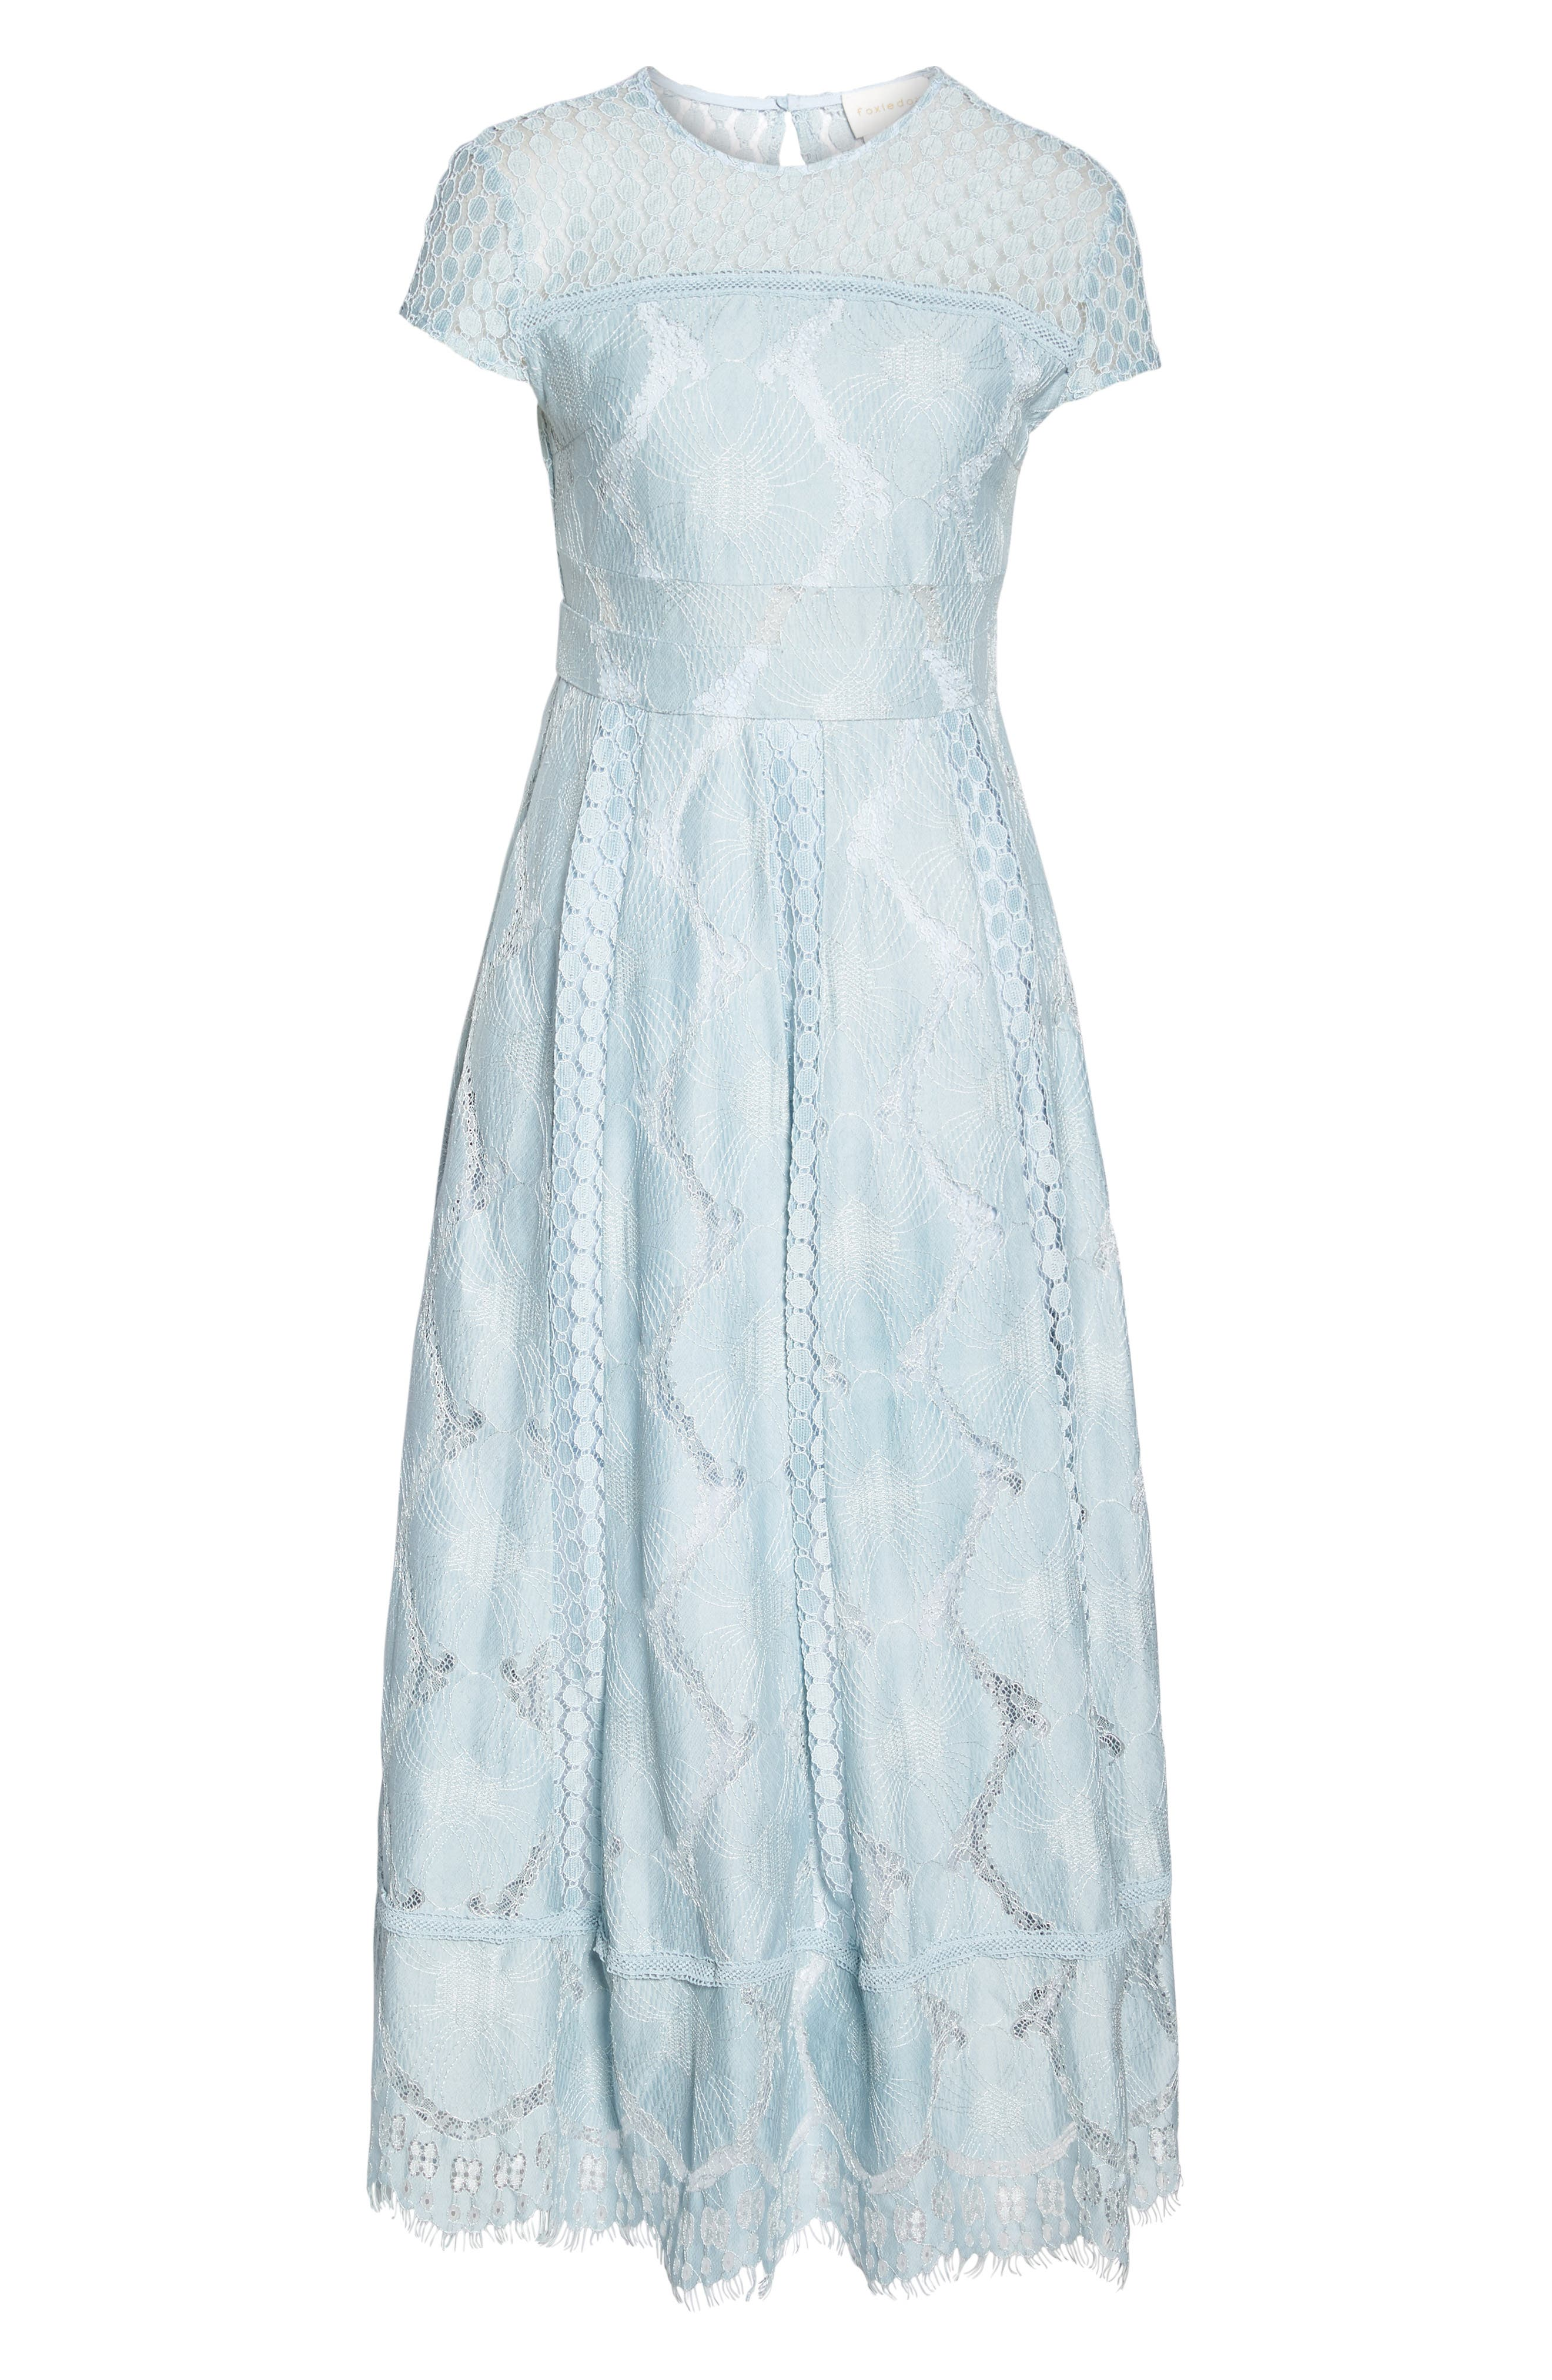 Theodora Lace Midi Dress,                             Alternate thumbnail 6, color,                             Bluebell